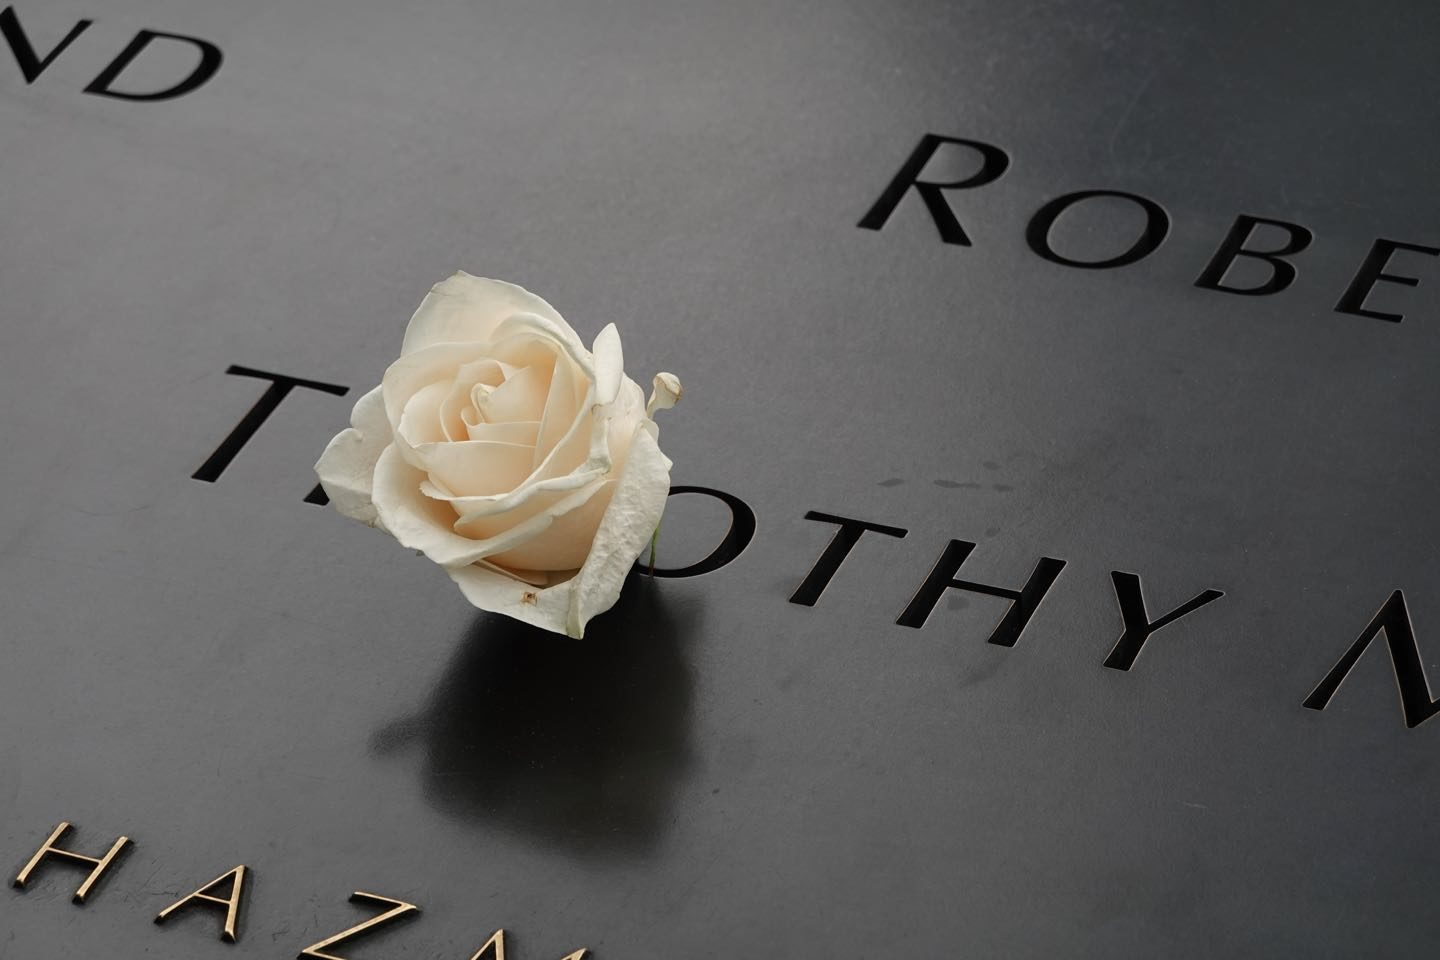 Rose on 9-11-Memorial Victims